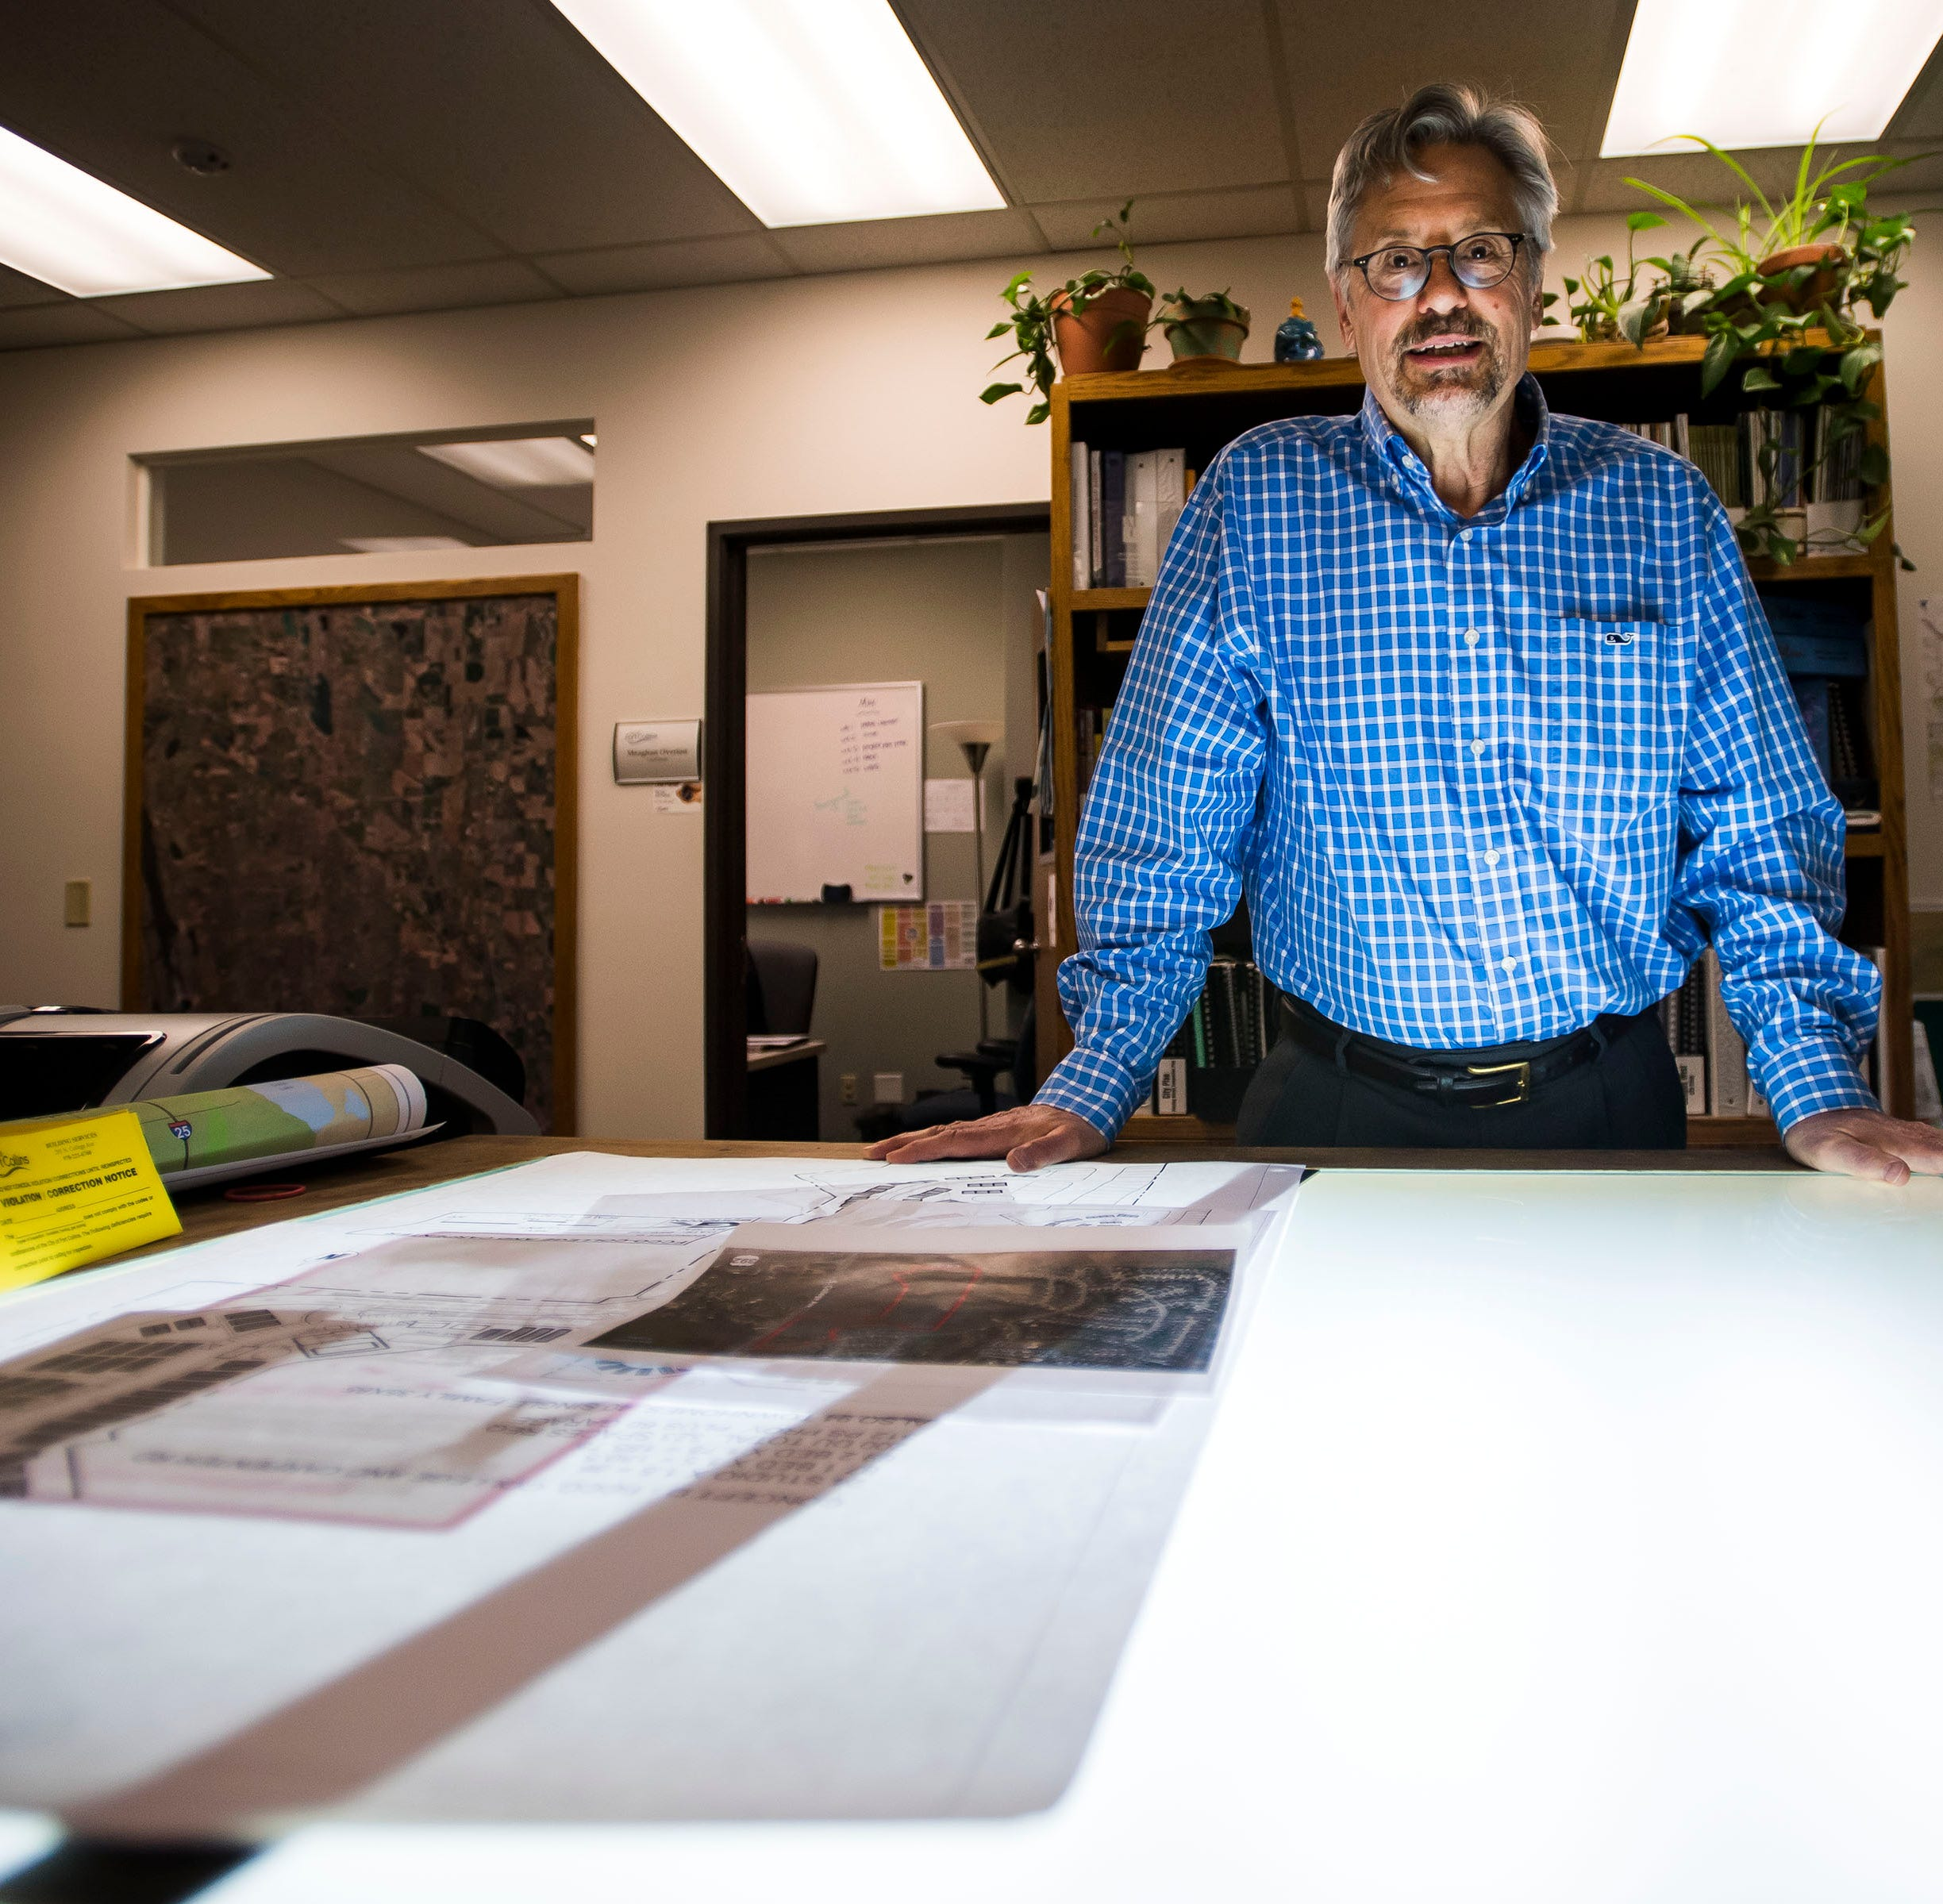 Fort Collins planner Ted Shepard retires after 33 years shaping what the city looks like